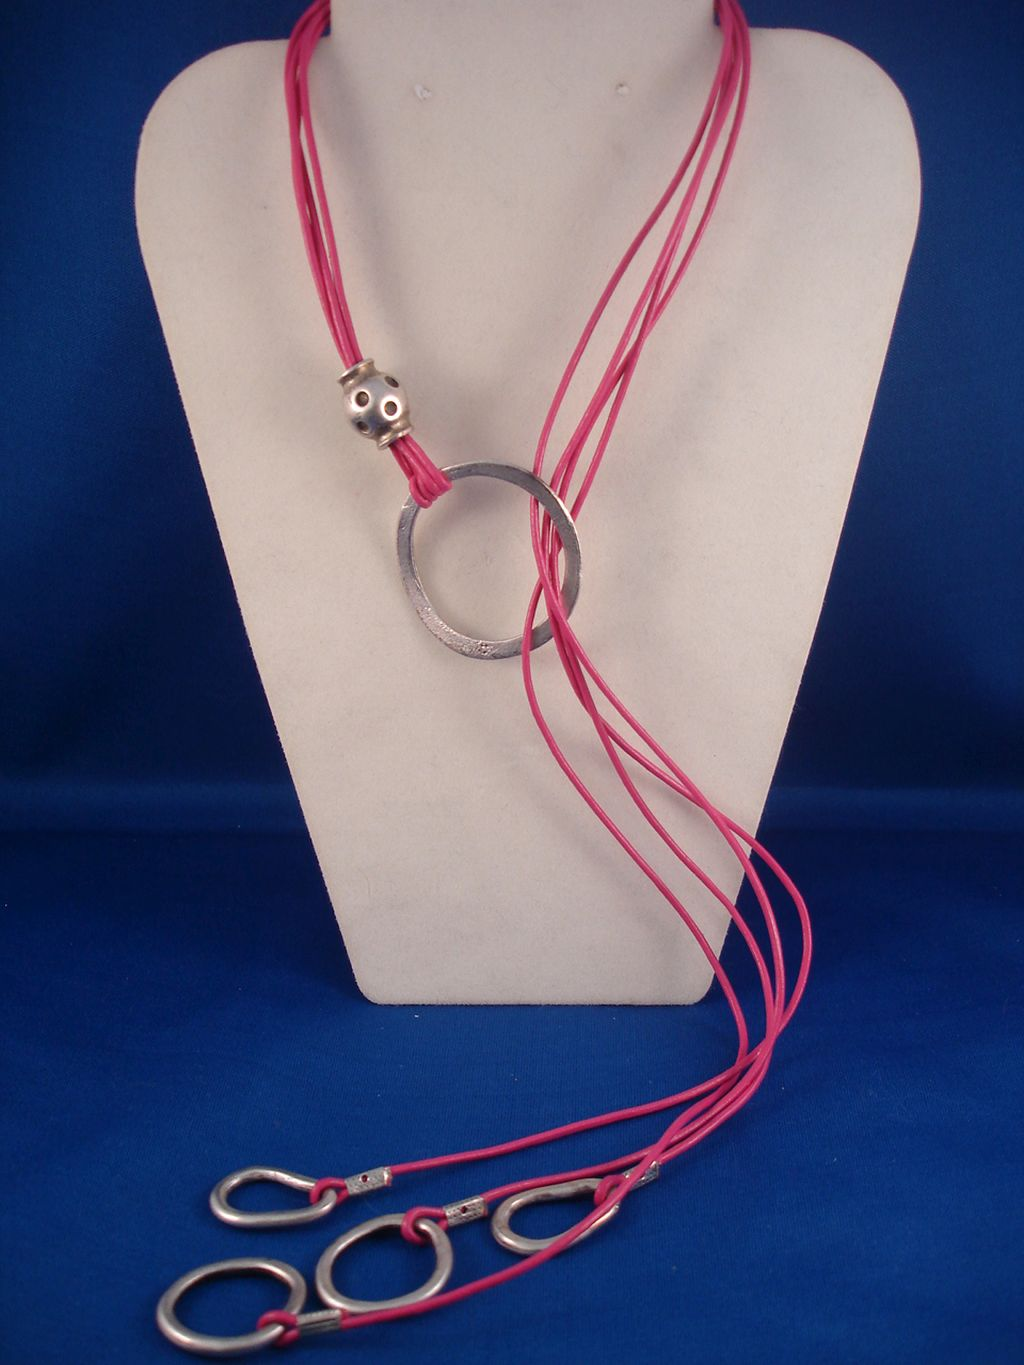 Contemporary Pink Genuine Leather Necklace, Adjustable Length, European Fashion Jewelry